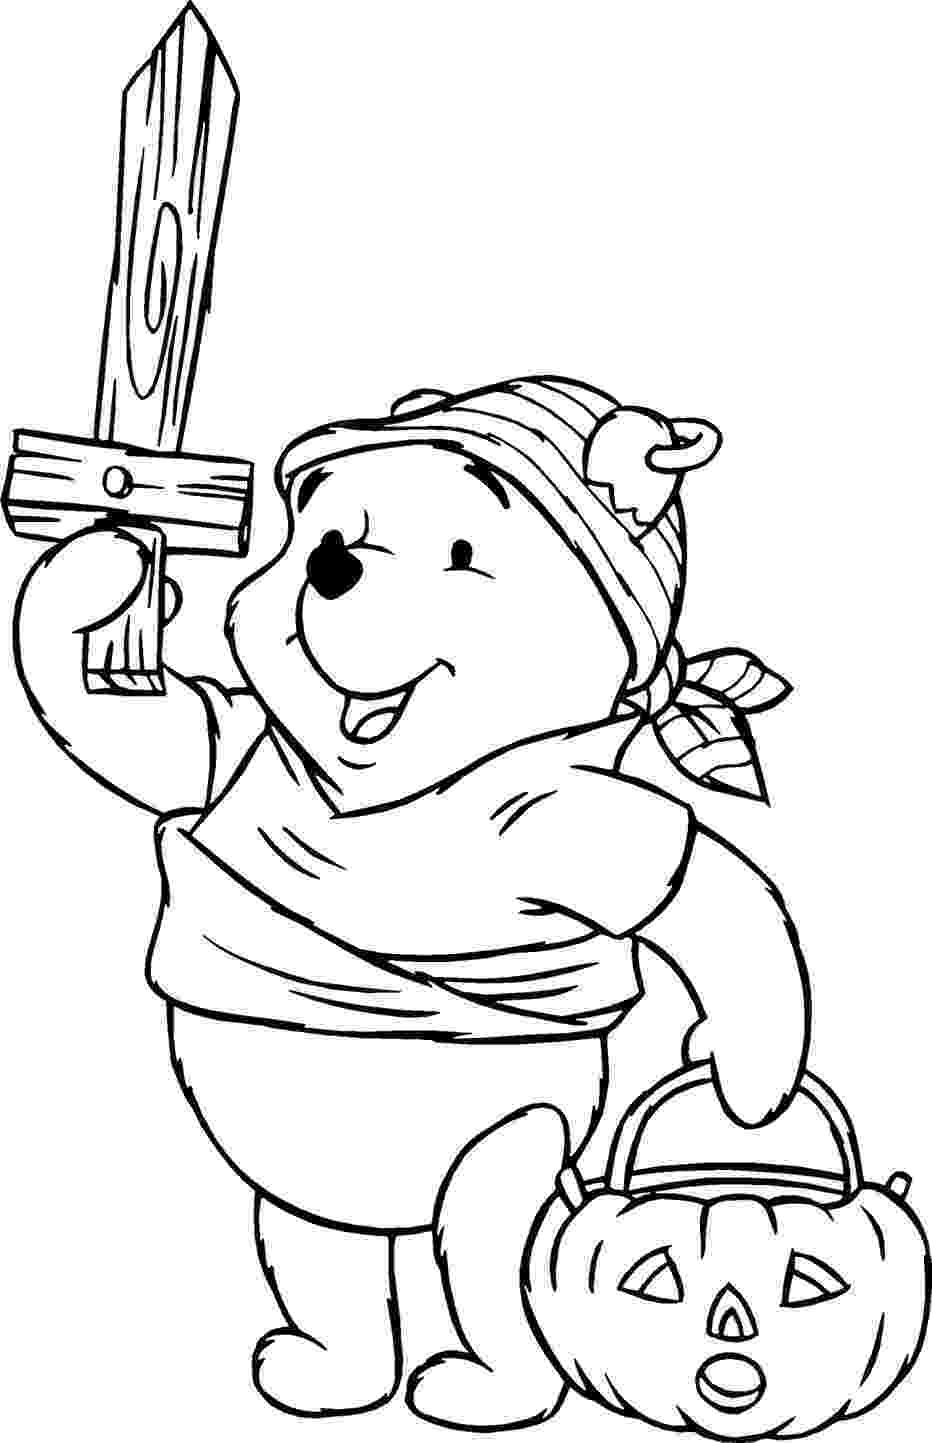 free coloring pages for teenagers free printable winnie the pooh coloring pages for kids teenagers free pages for coloring